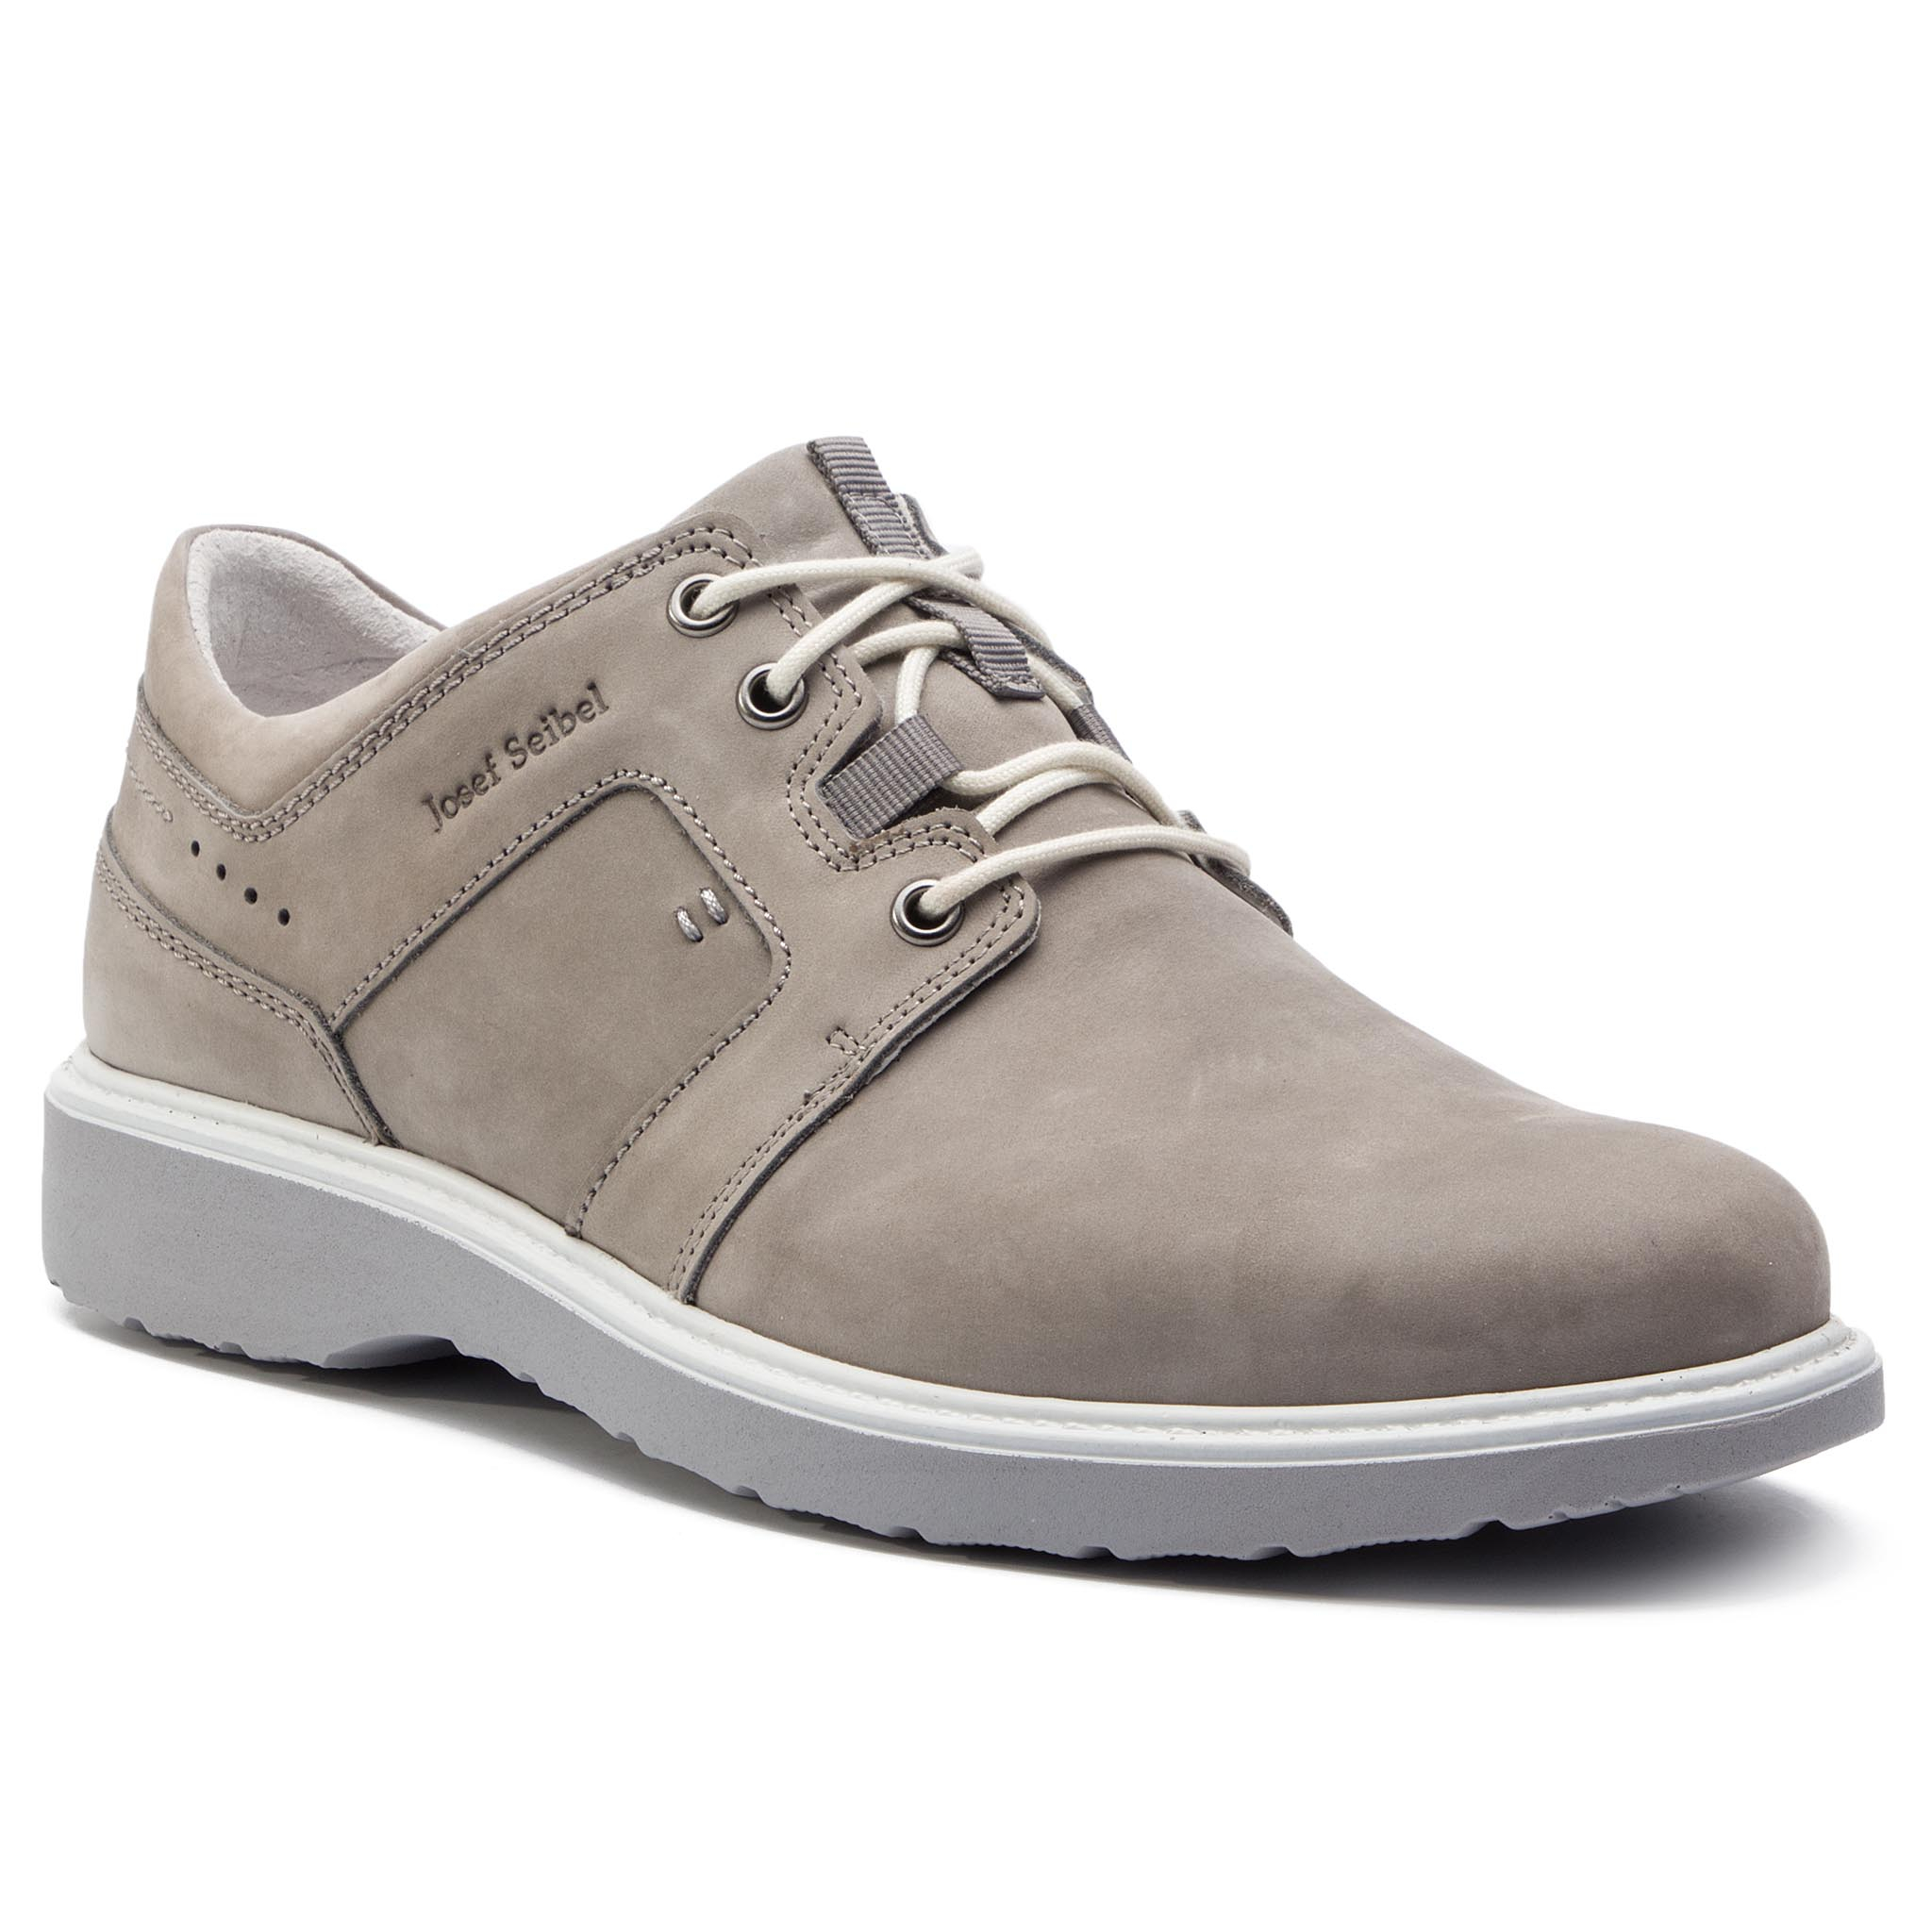 a75a9a81 Shoes JOSEF SEIBEL - Anvers 67 43621 21 320 Brandy - Casual - Low ...